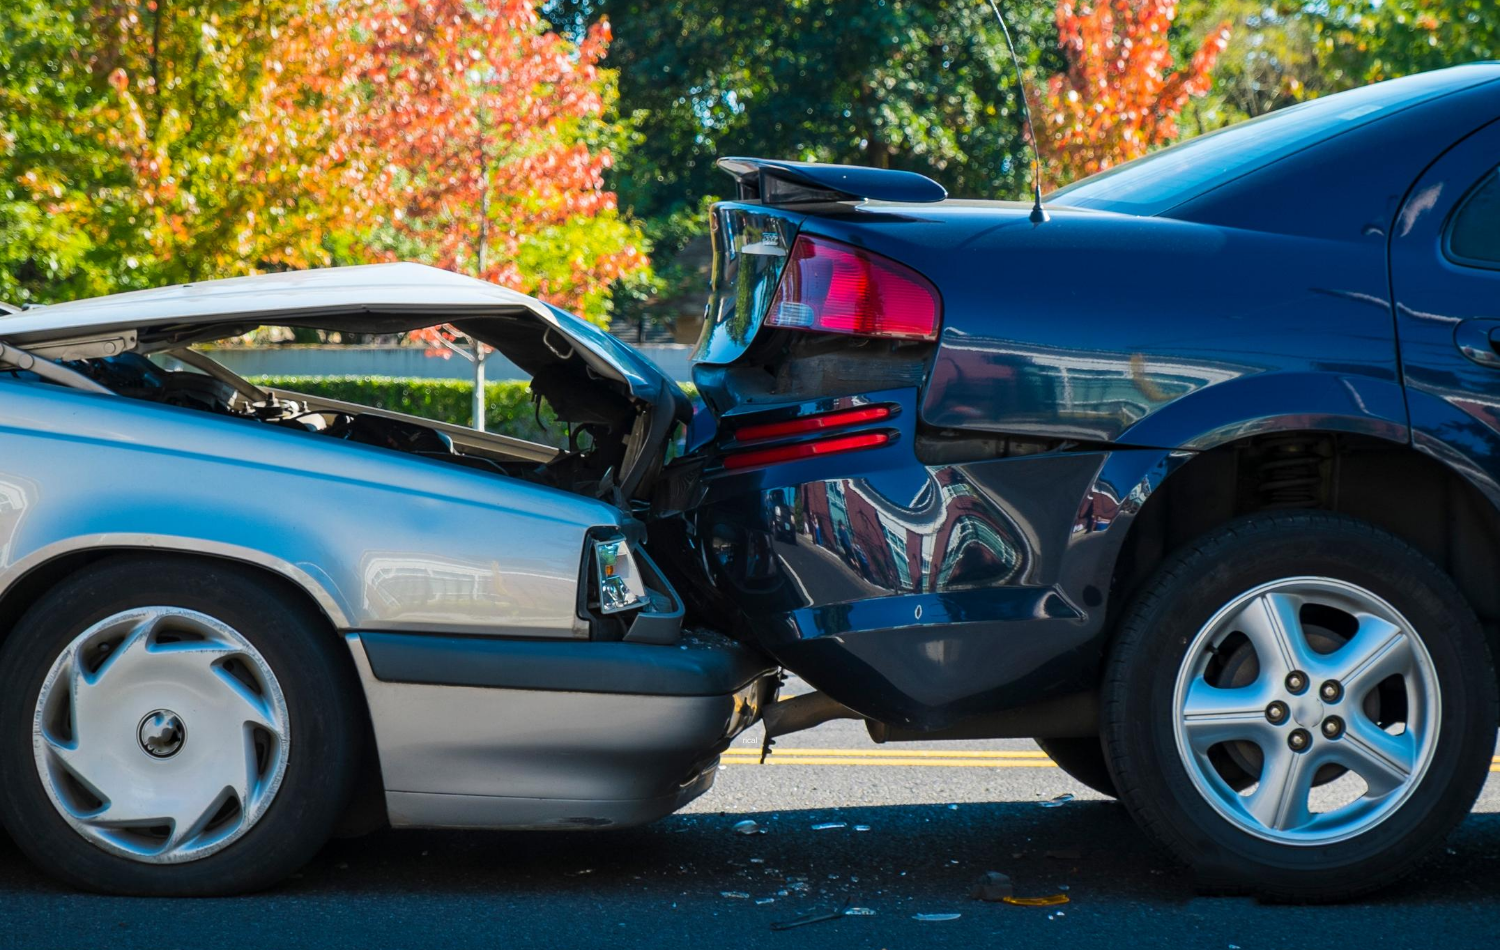 What You Should Do After an Automobile Accident